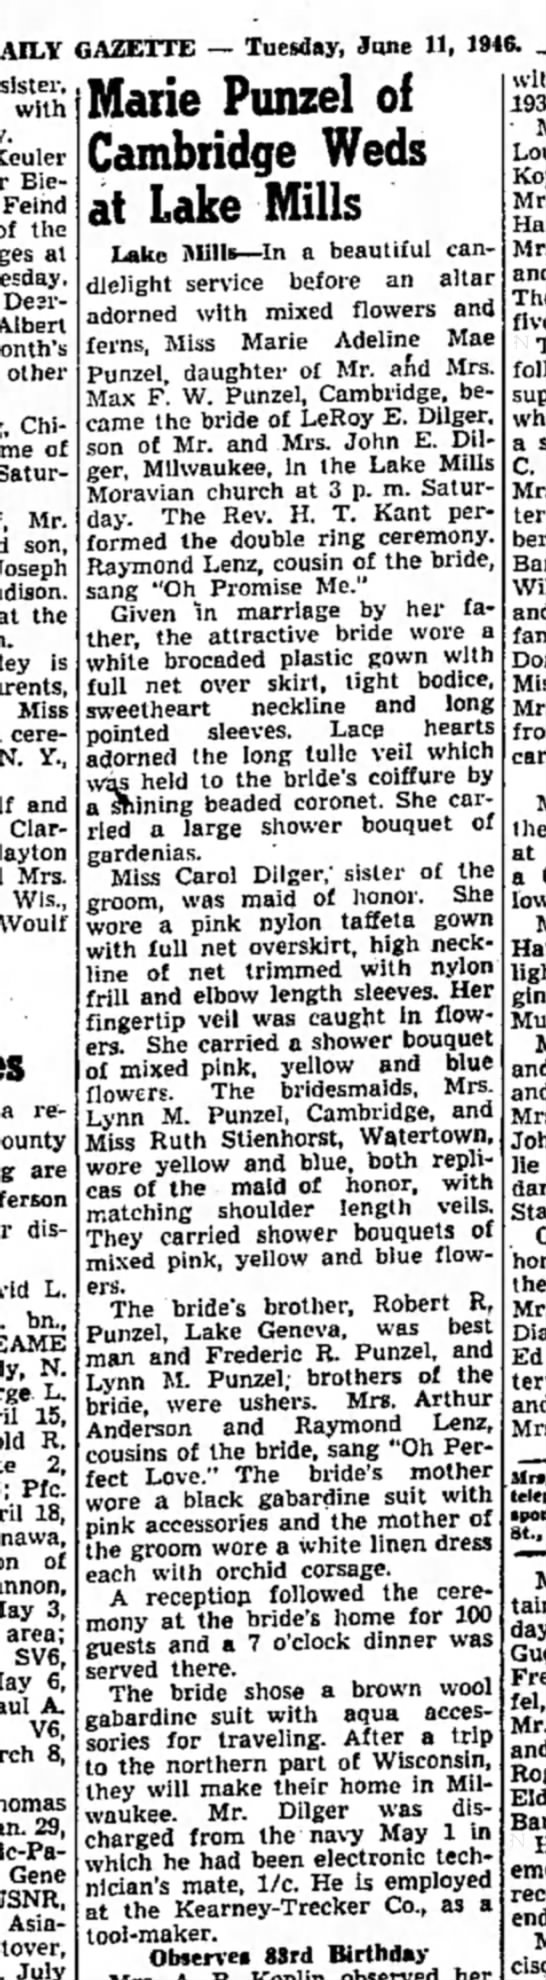 Punzel. Marie wed to Mr. Dilger - DAILY GAZETTE — Tuesday, June 11, 1946. sister,...